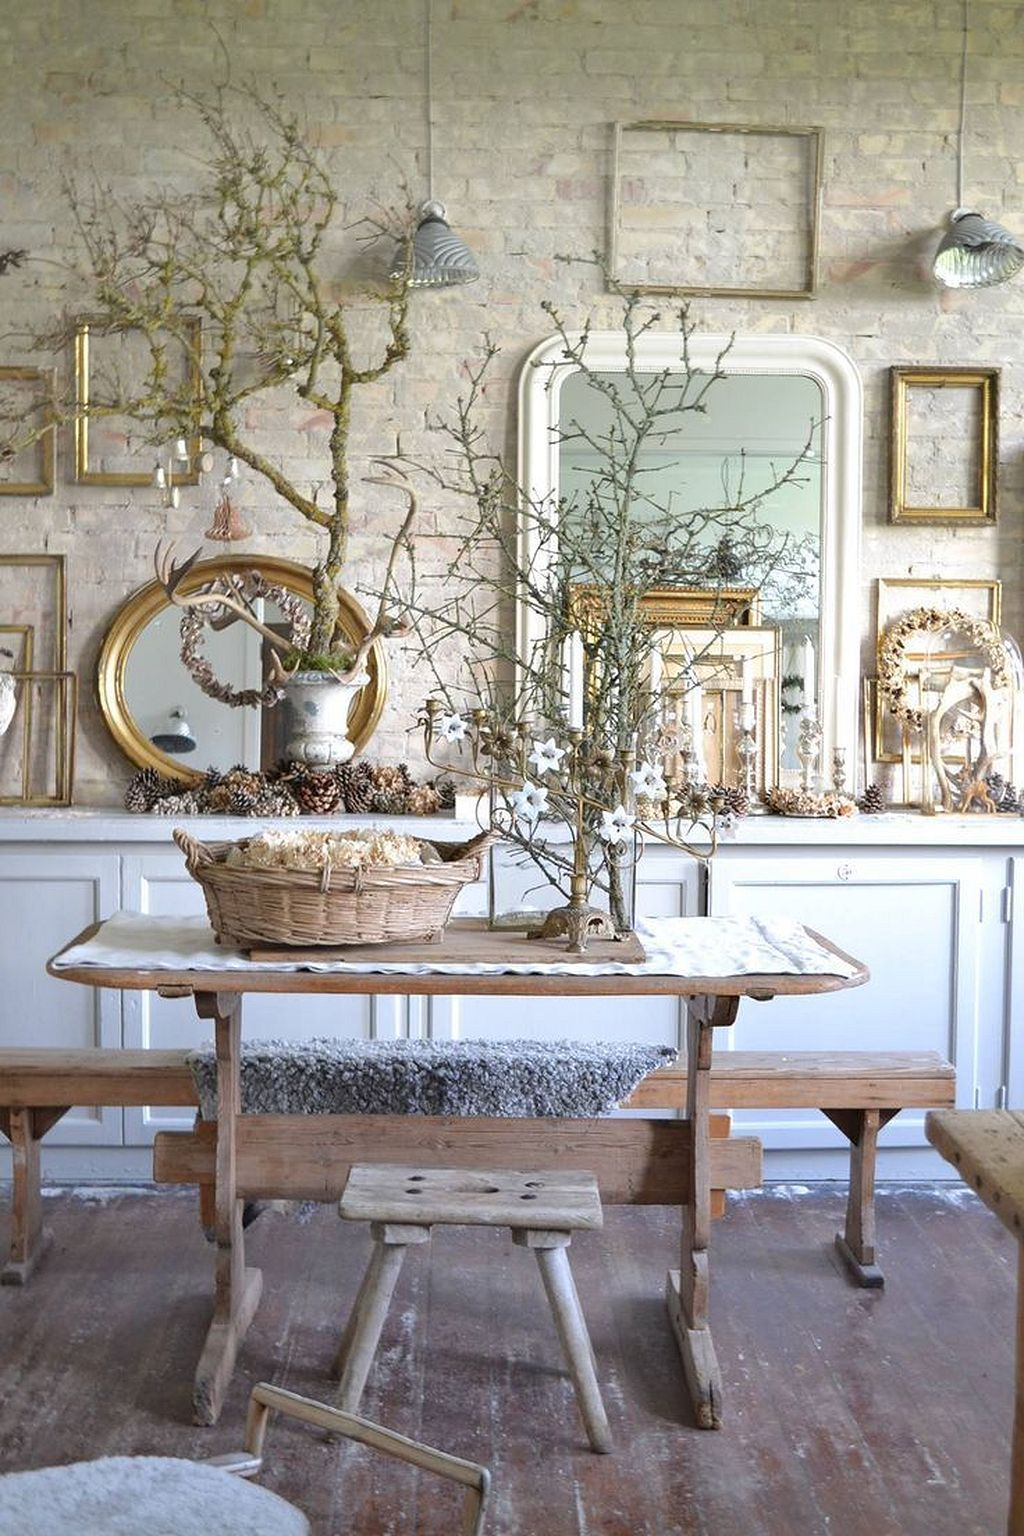 40 Vintage Decoration For Home Ideas in 2020 Vintage